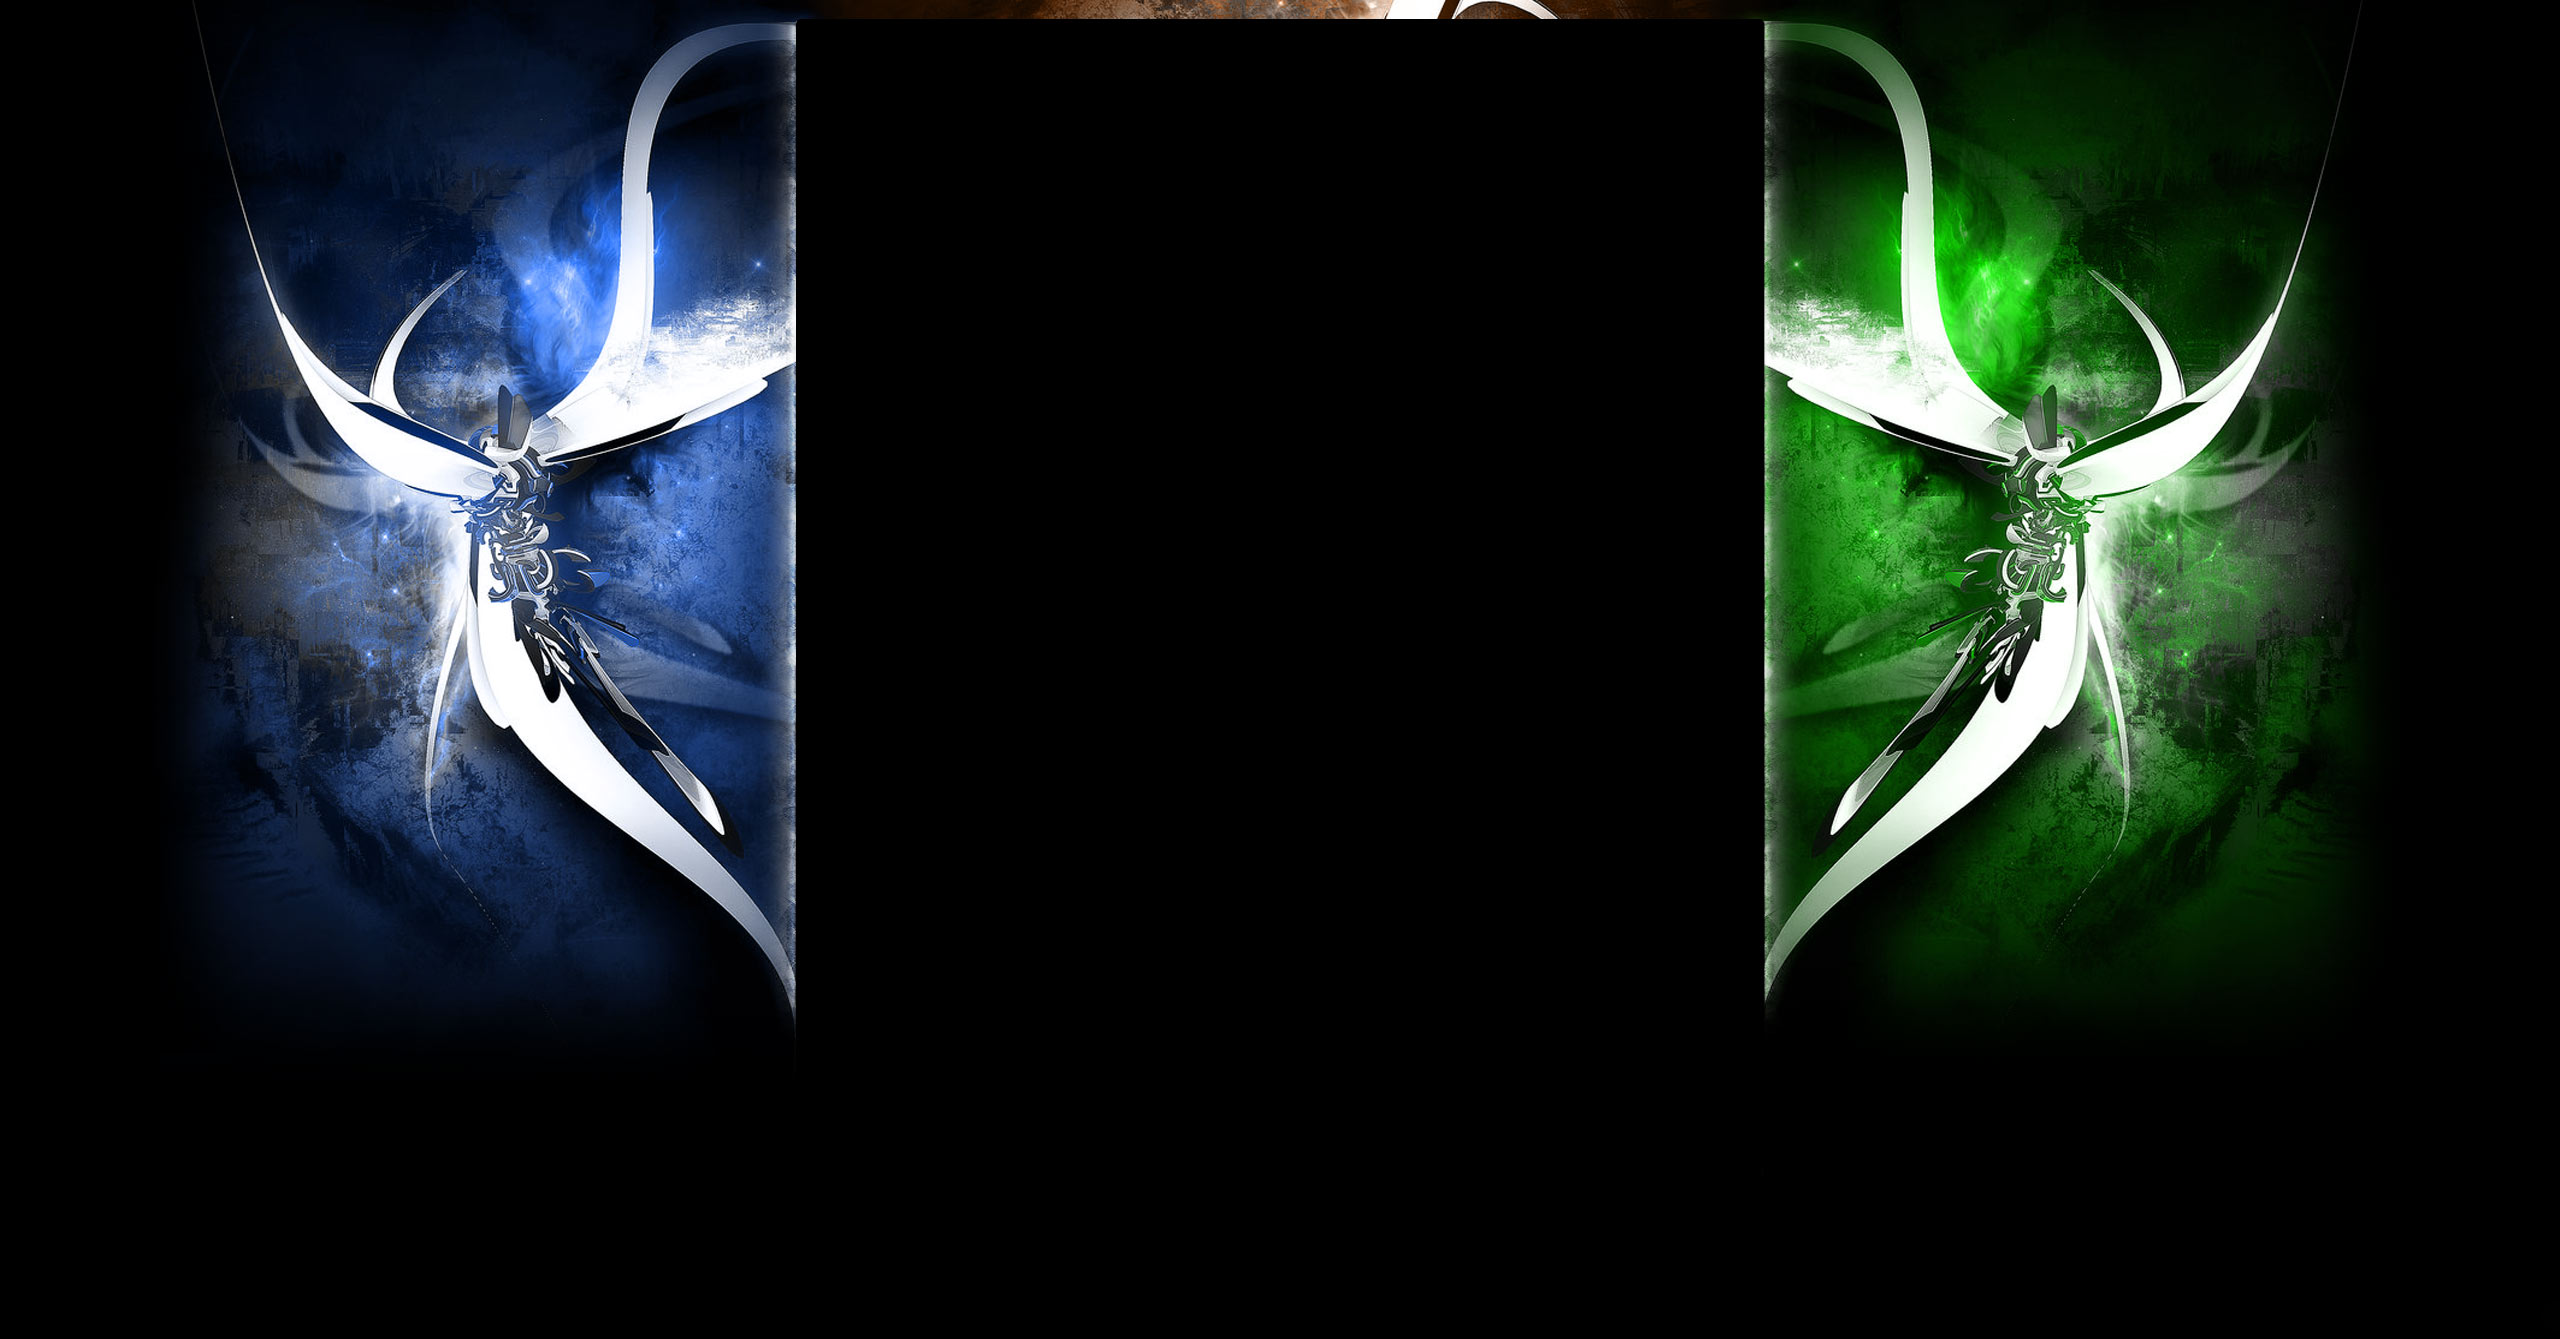 Gaming Backgrounds For Youtube Channel Art New Youtube